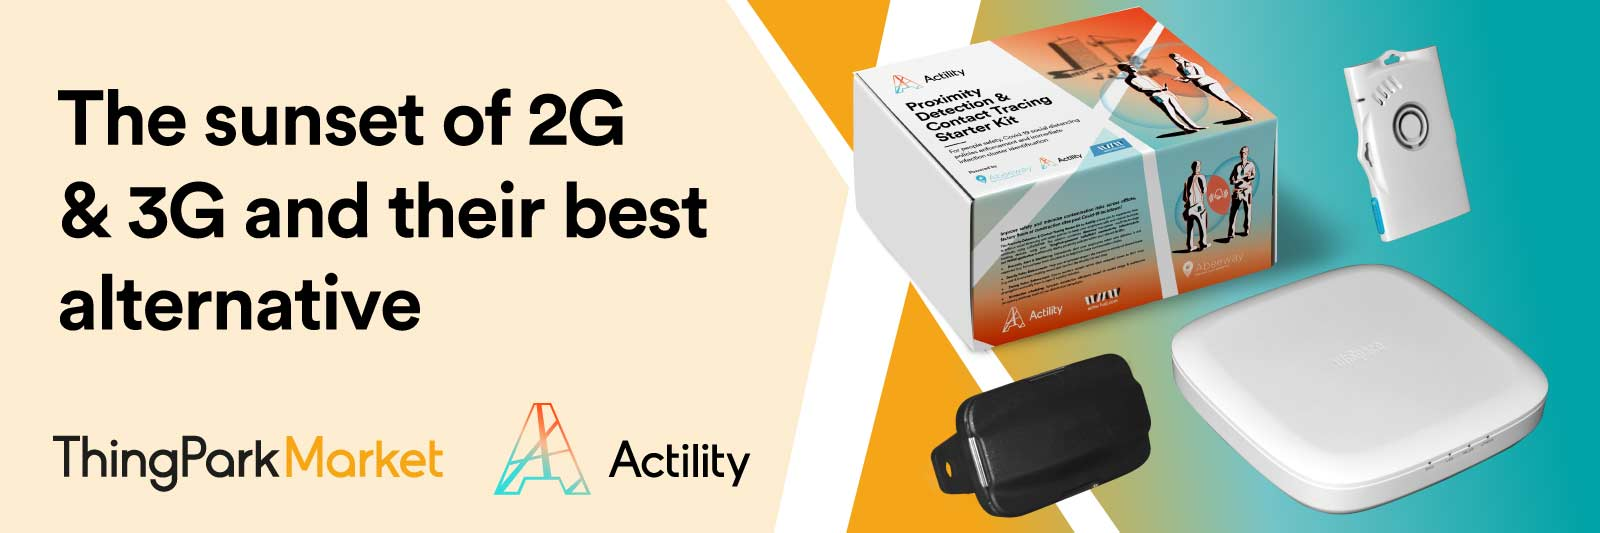 The 2G shutdown & 3G sunset and their best alternatives